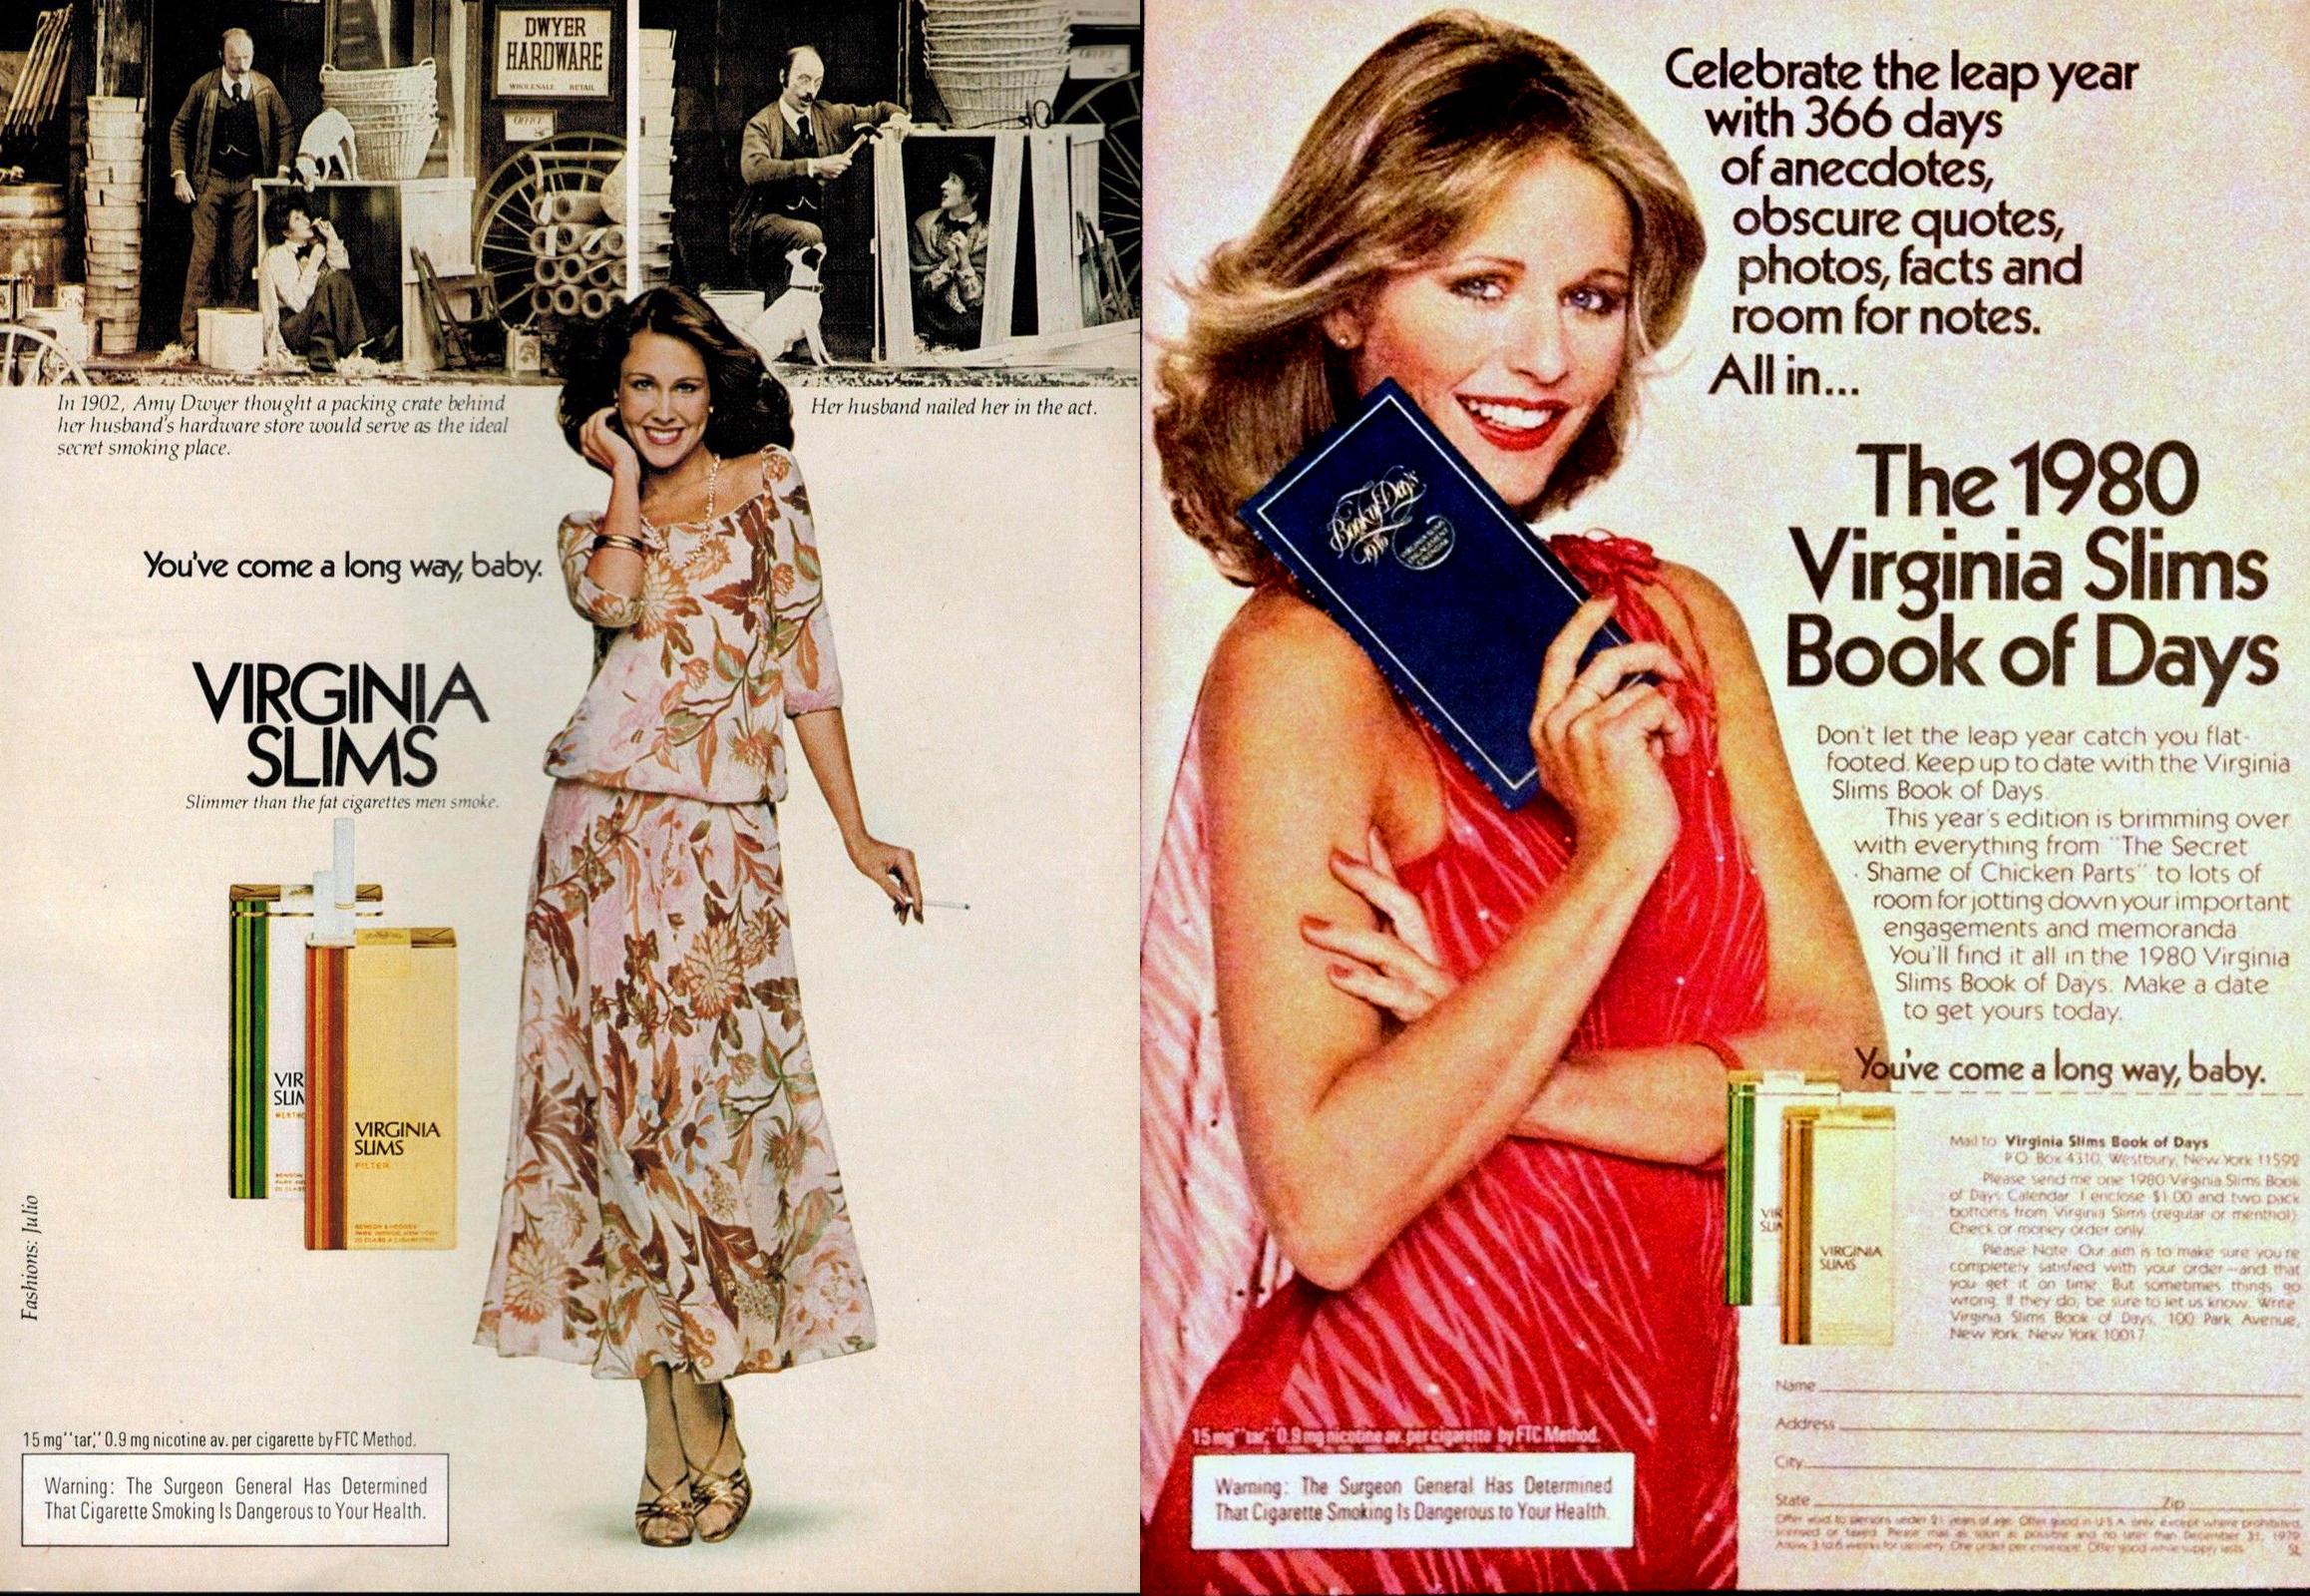 1979 virginia slims